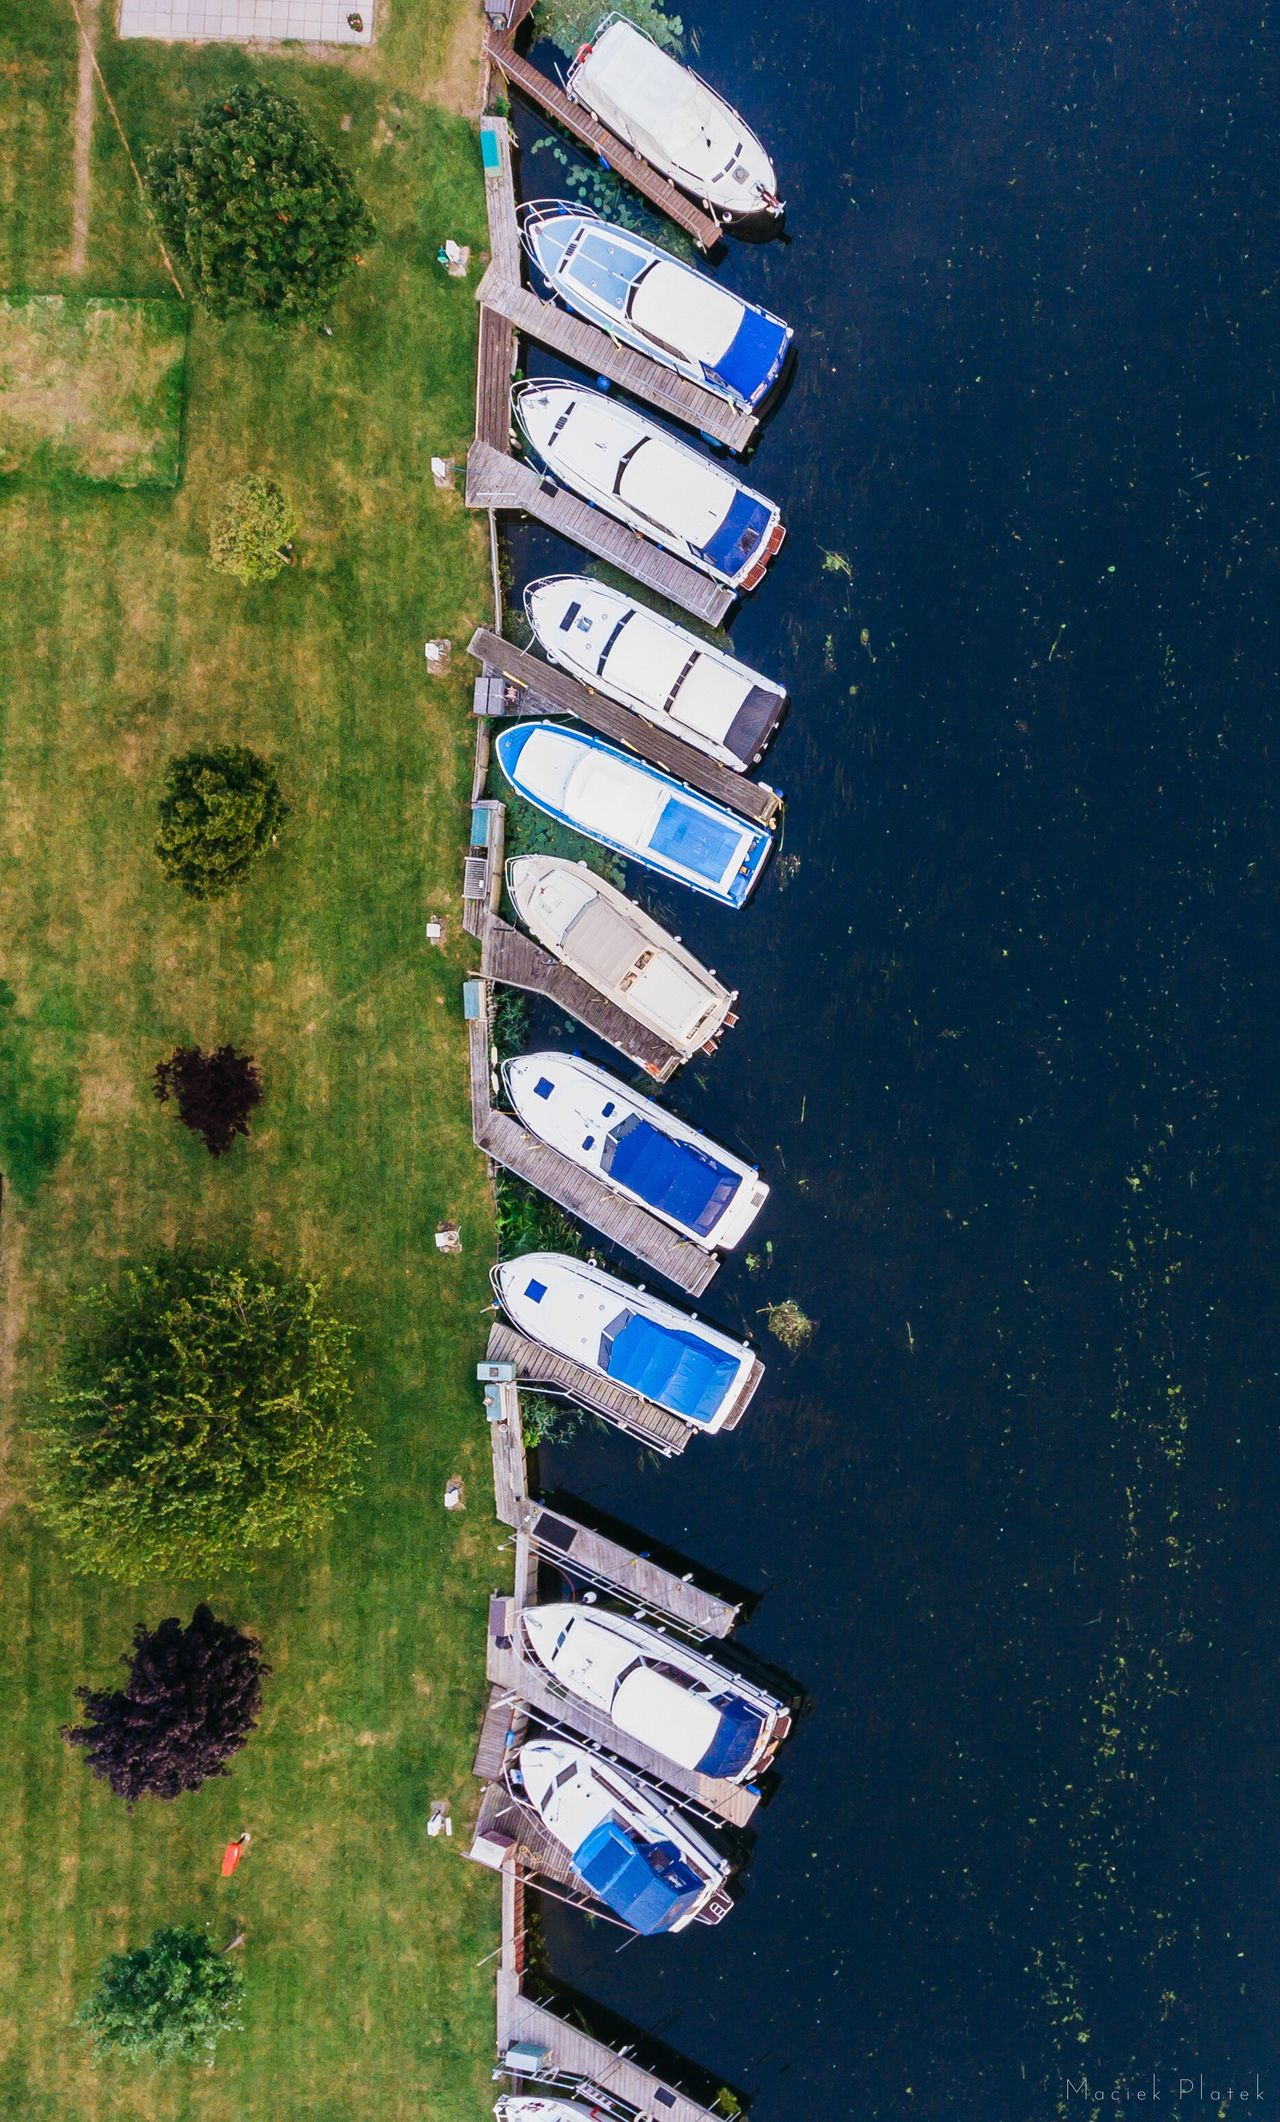 At the dock High Angle View Water Outdoors Architecture Field Building Exterior Nature Day Grass Scenics Growth Tranquility Aerial View Built Structure Beauty In Nature No People Sky Dronephotography Aerial Shot